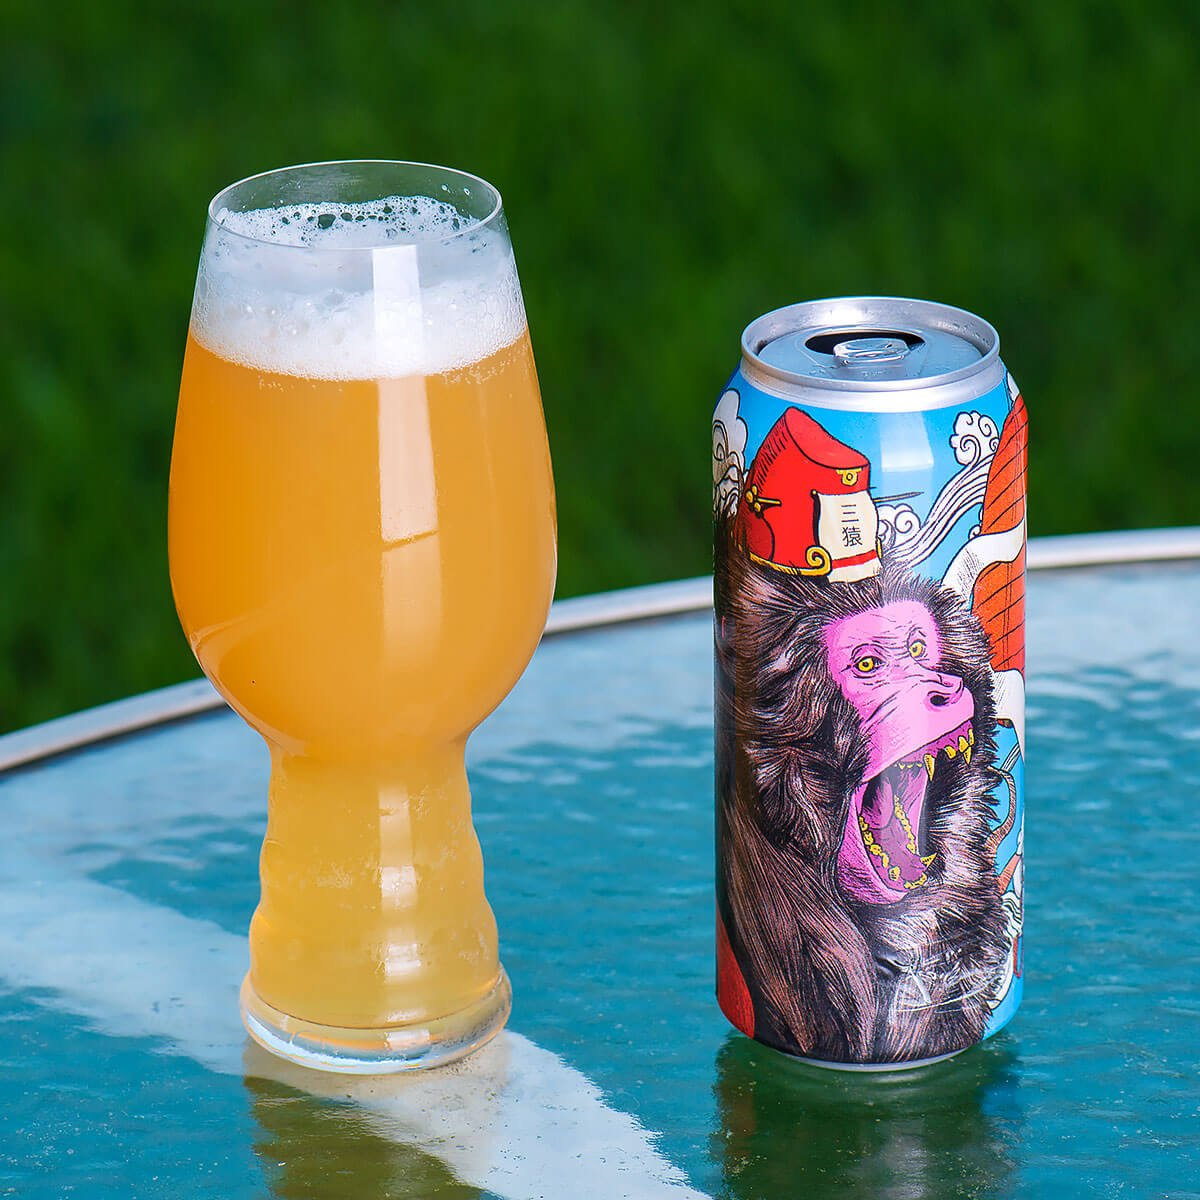 Life In The Clouds is a New England-style IPA by Collective Arts Brewing that blends hoppy citrus with tropical fruits and bready malt.